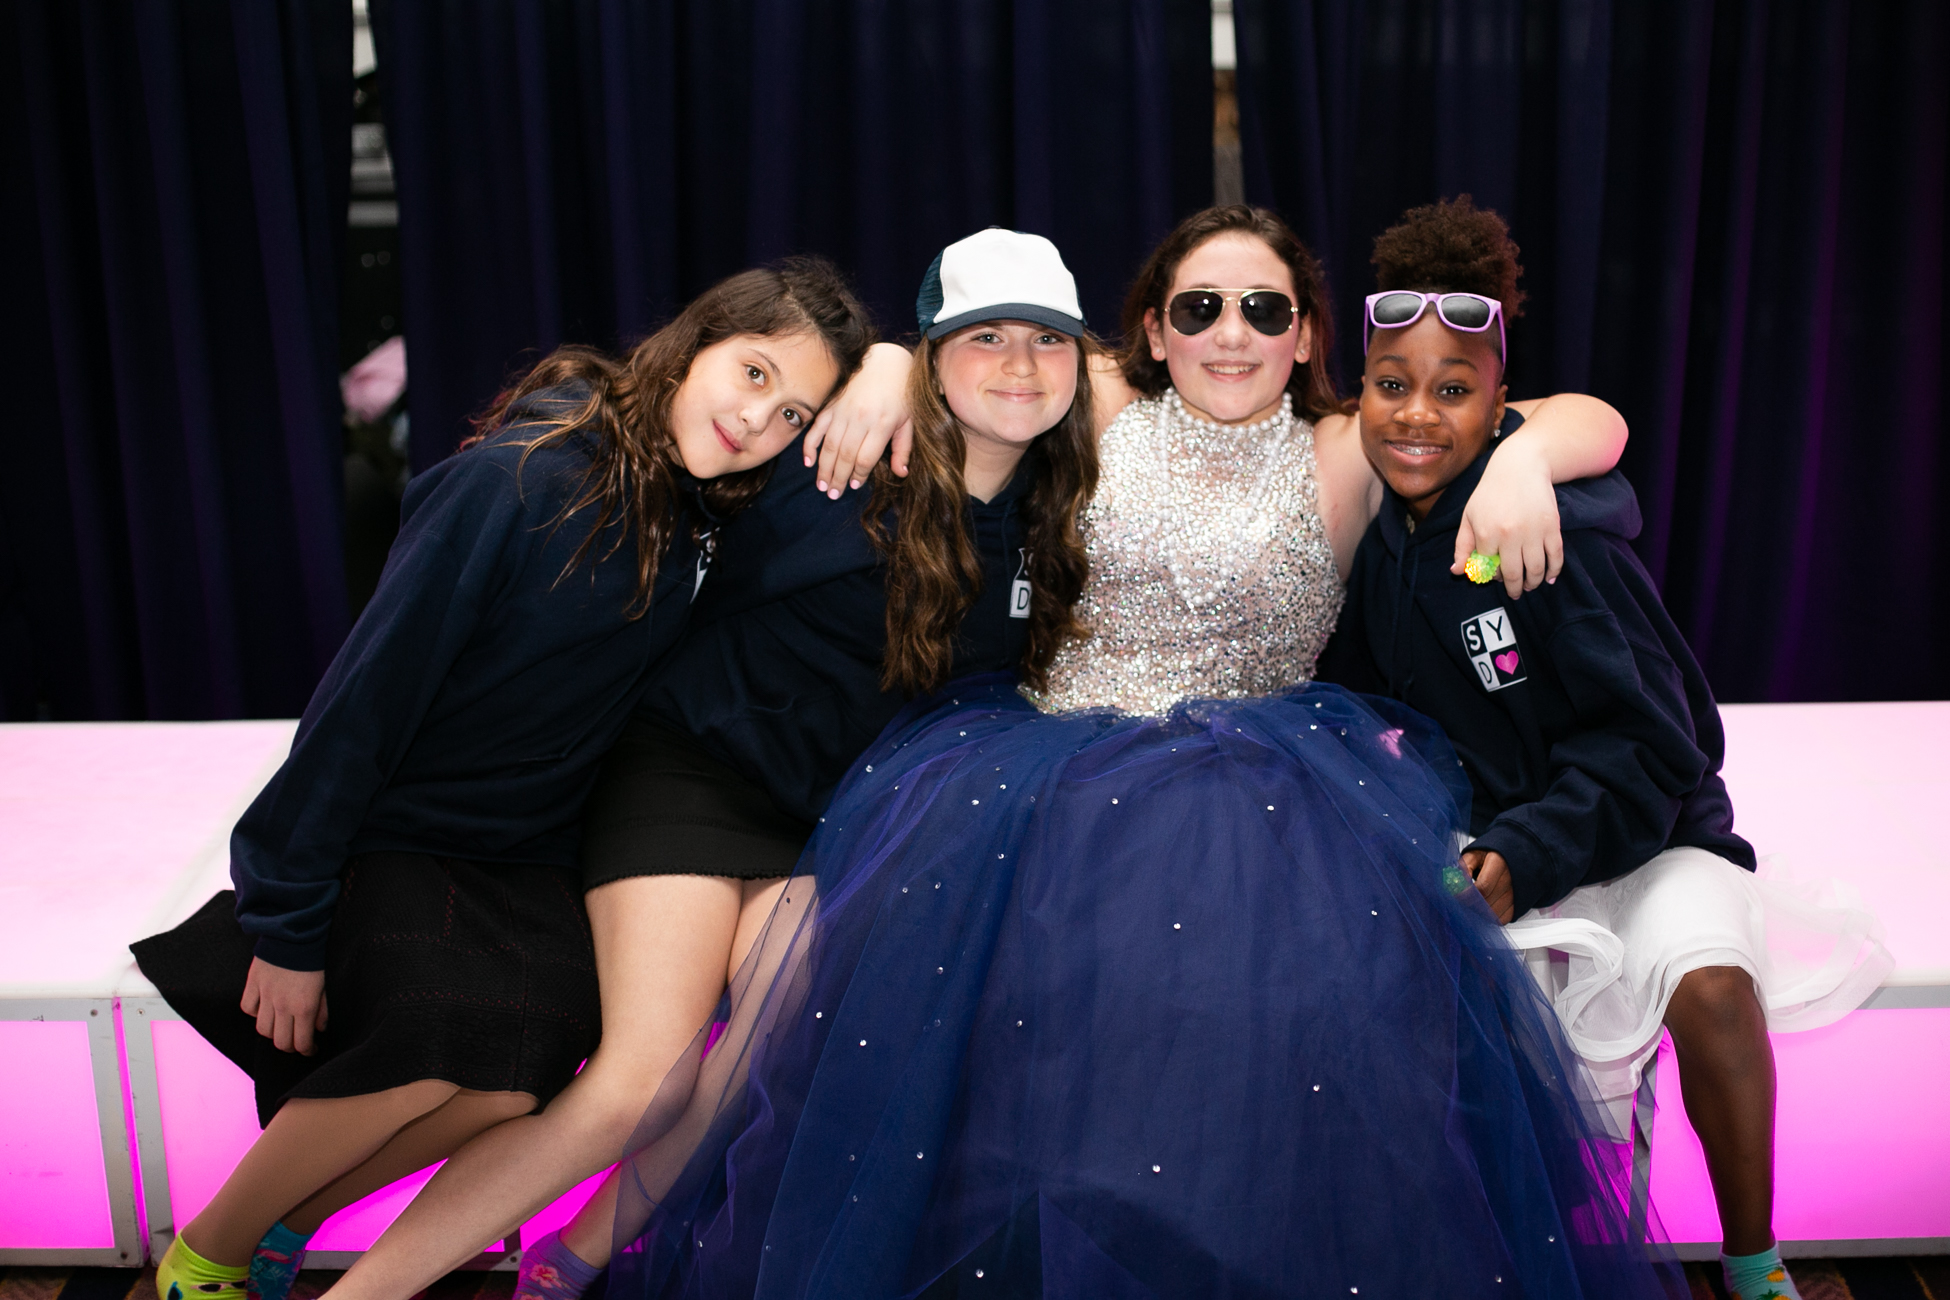 Sydney's Bat Mitzvah at Sheraton Society Hill by Avi Loren Fox LLC - Sneak Peak-100.jpg